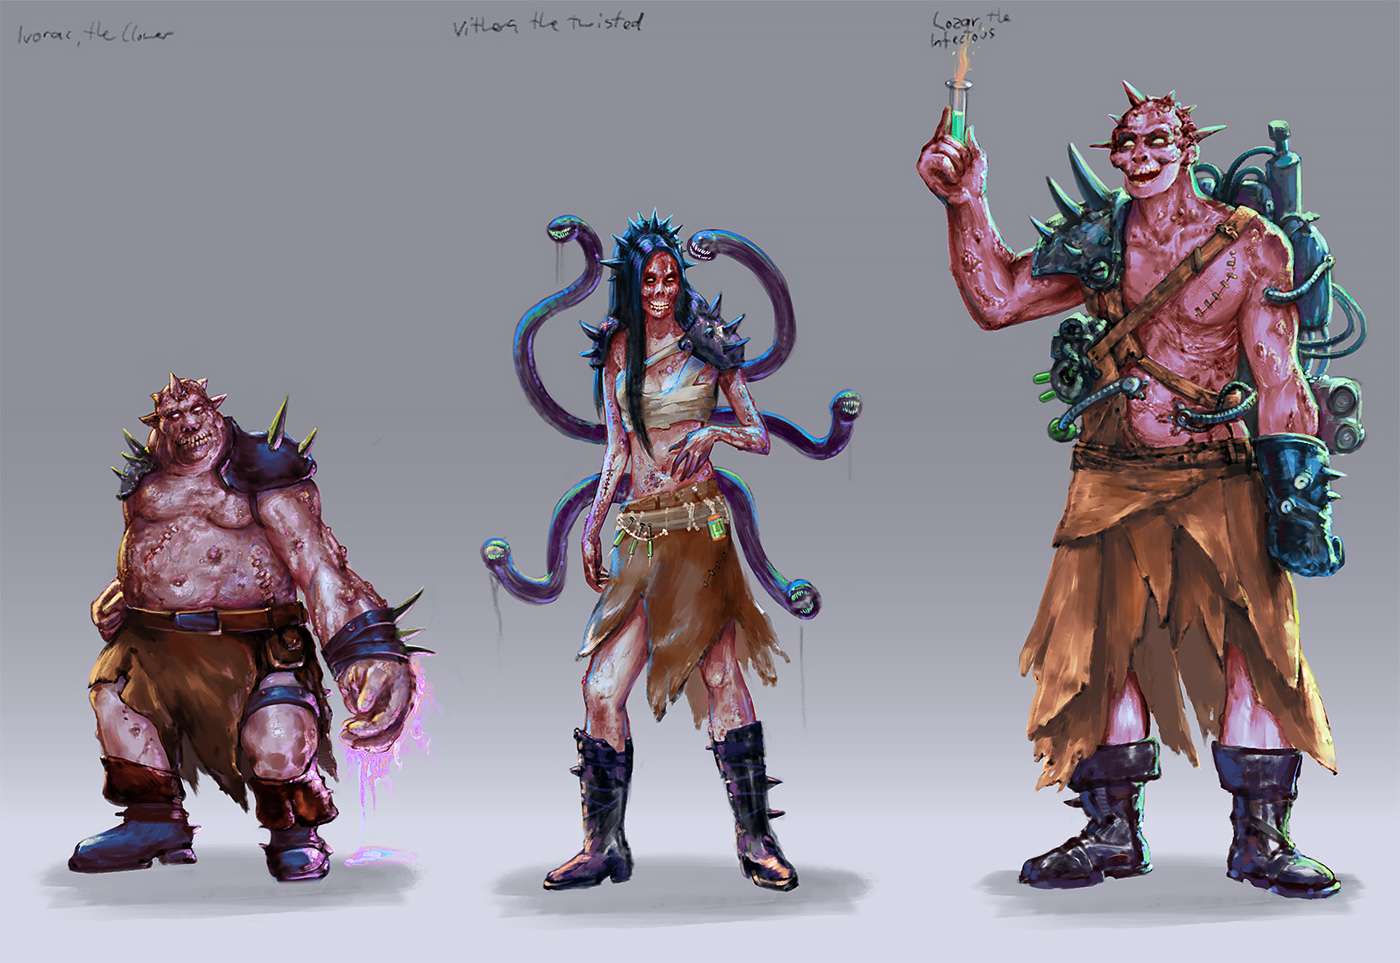 Creature Character Design Portfolio Digital ArtLords - Game design portfolio